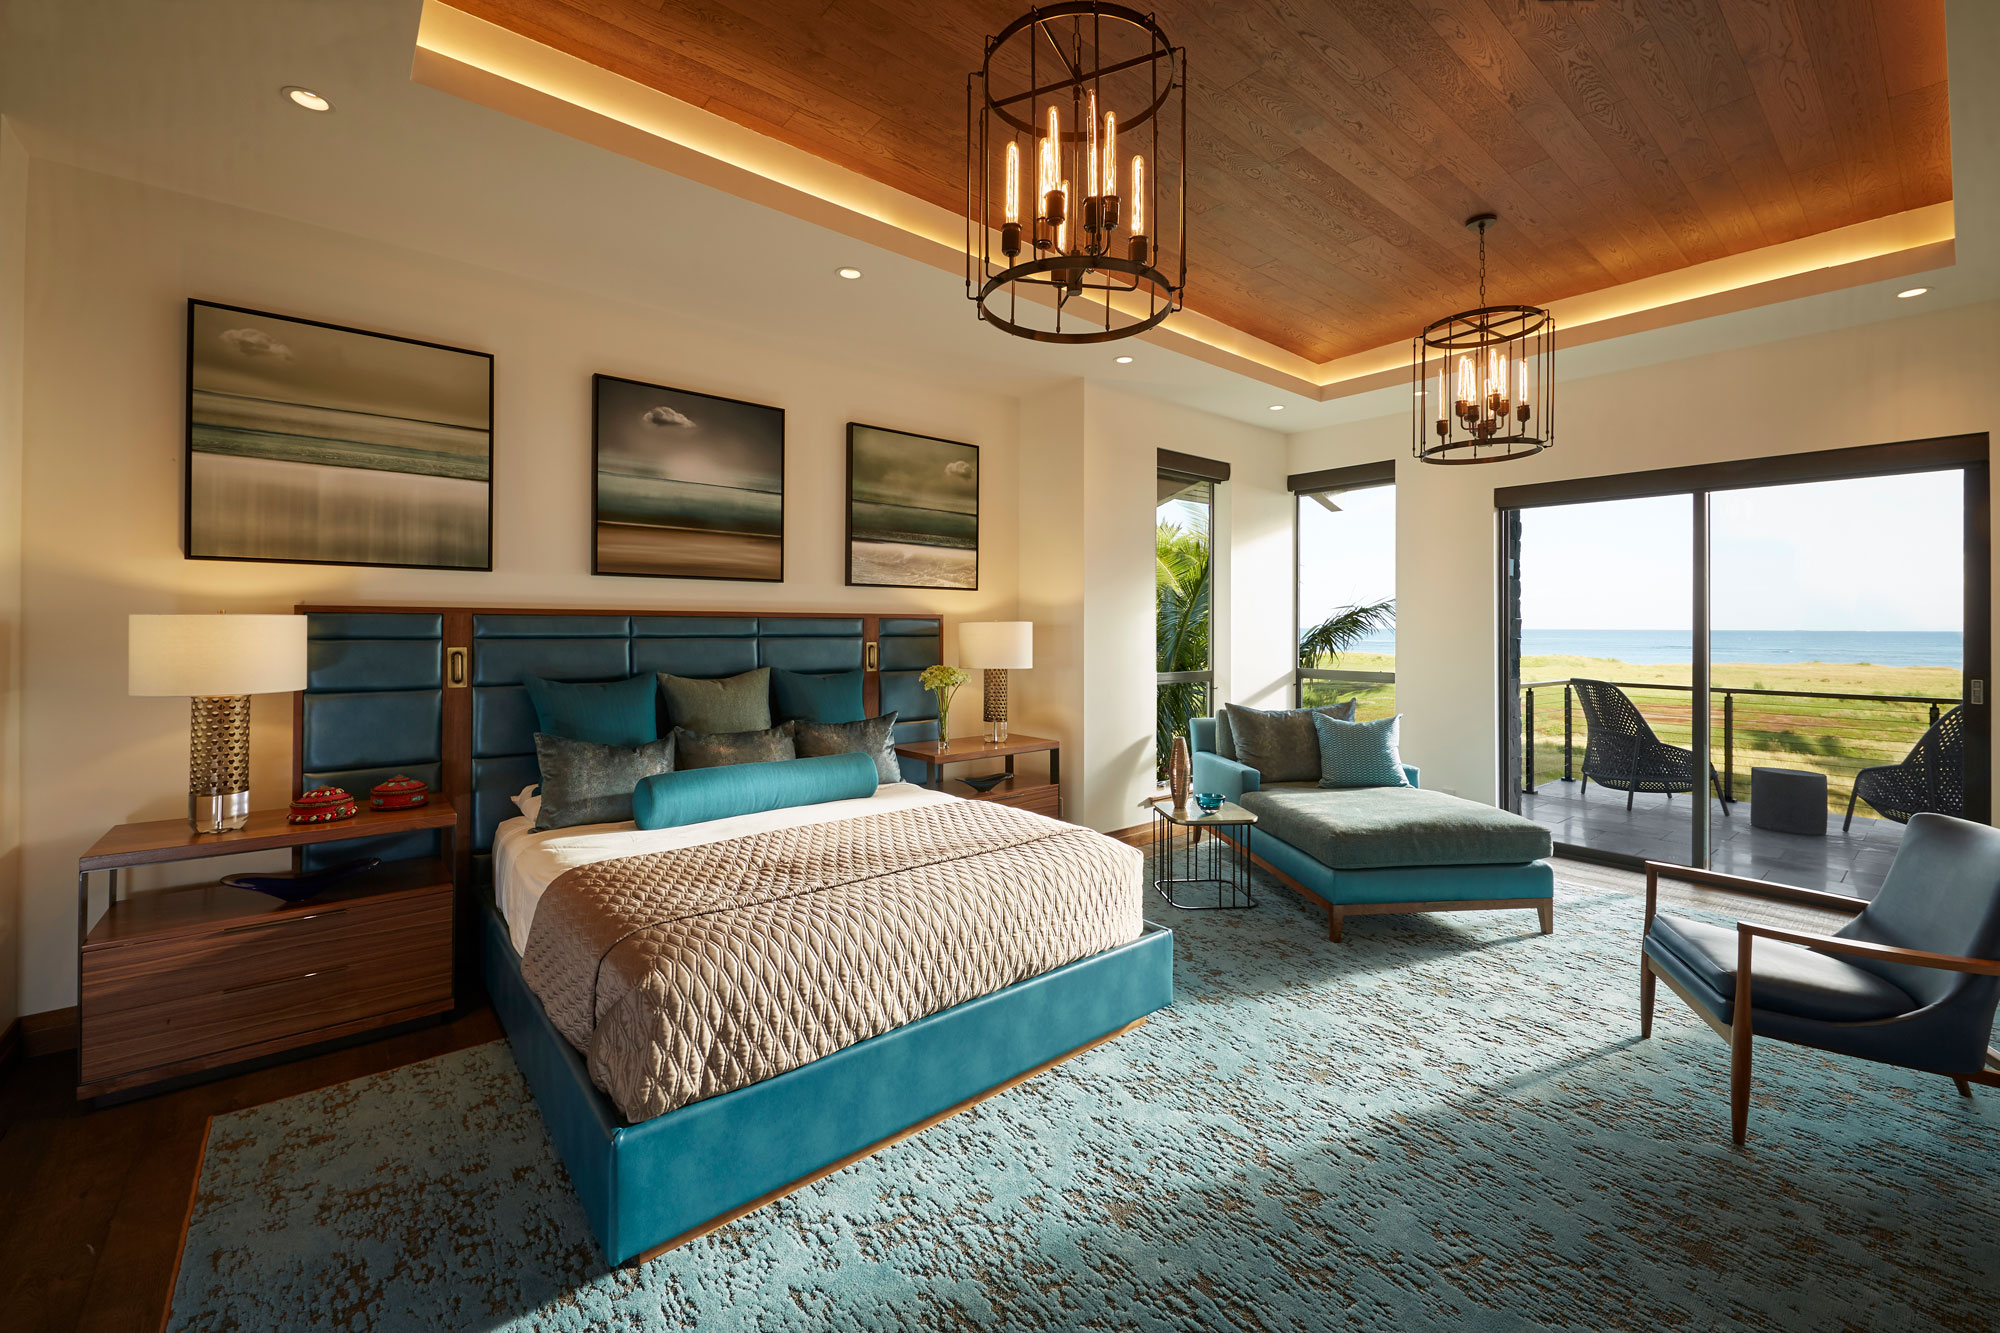 Wogan_Design_Interior_Design_Maui_012